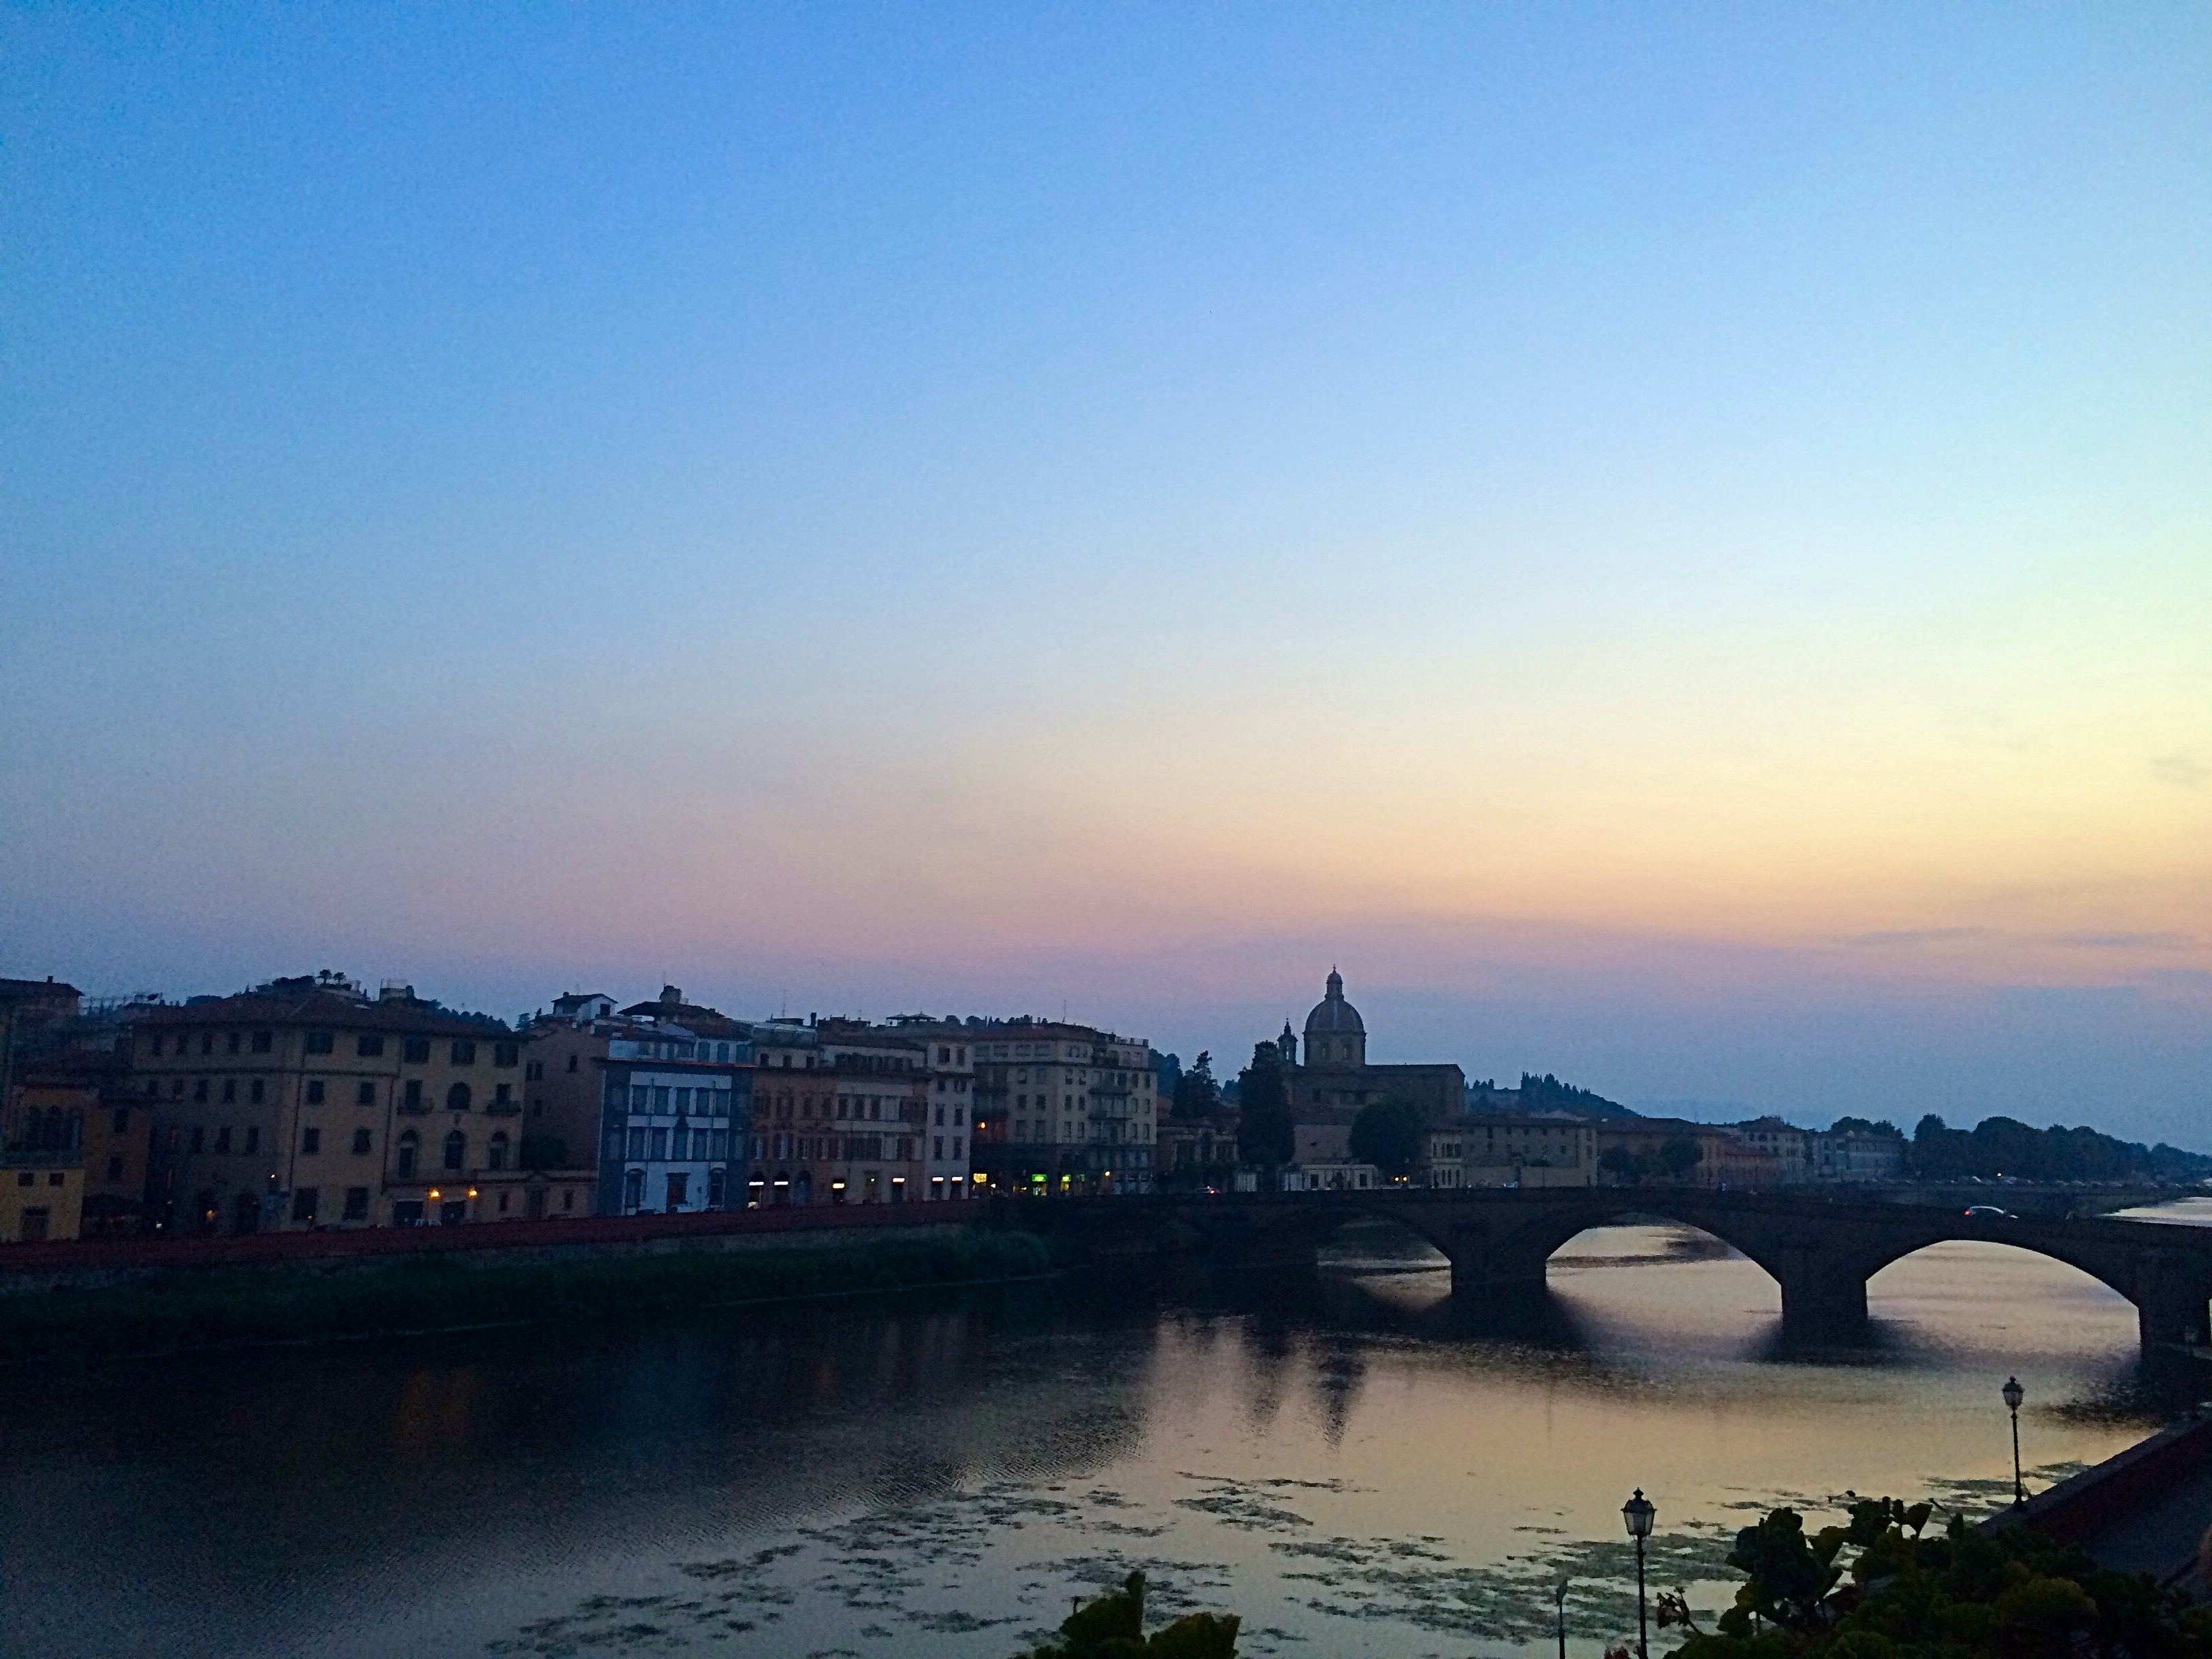 Photos taken in Florence, Italy